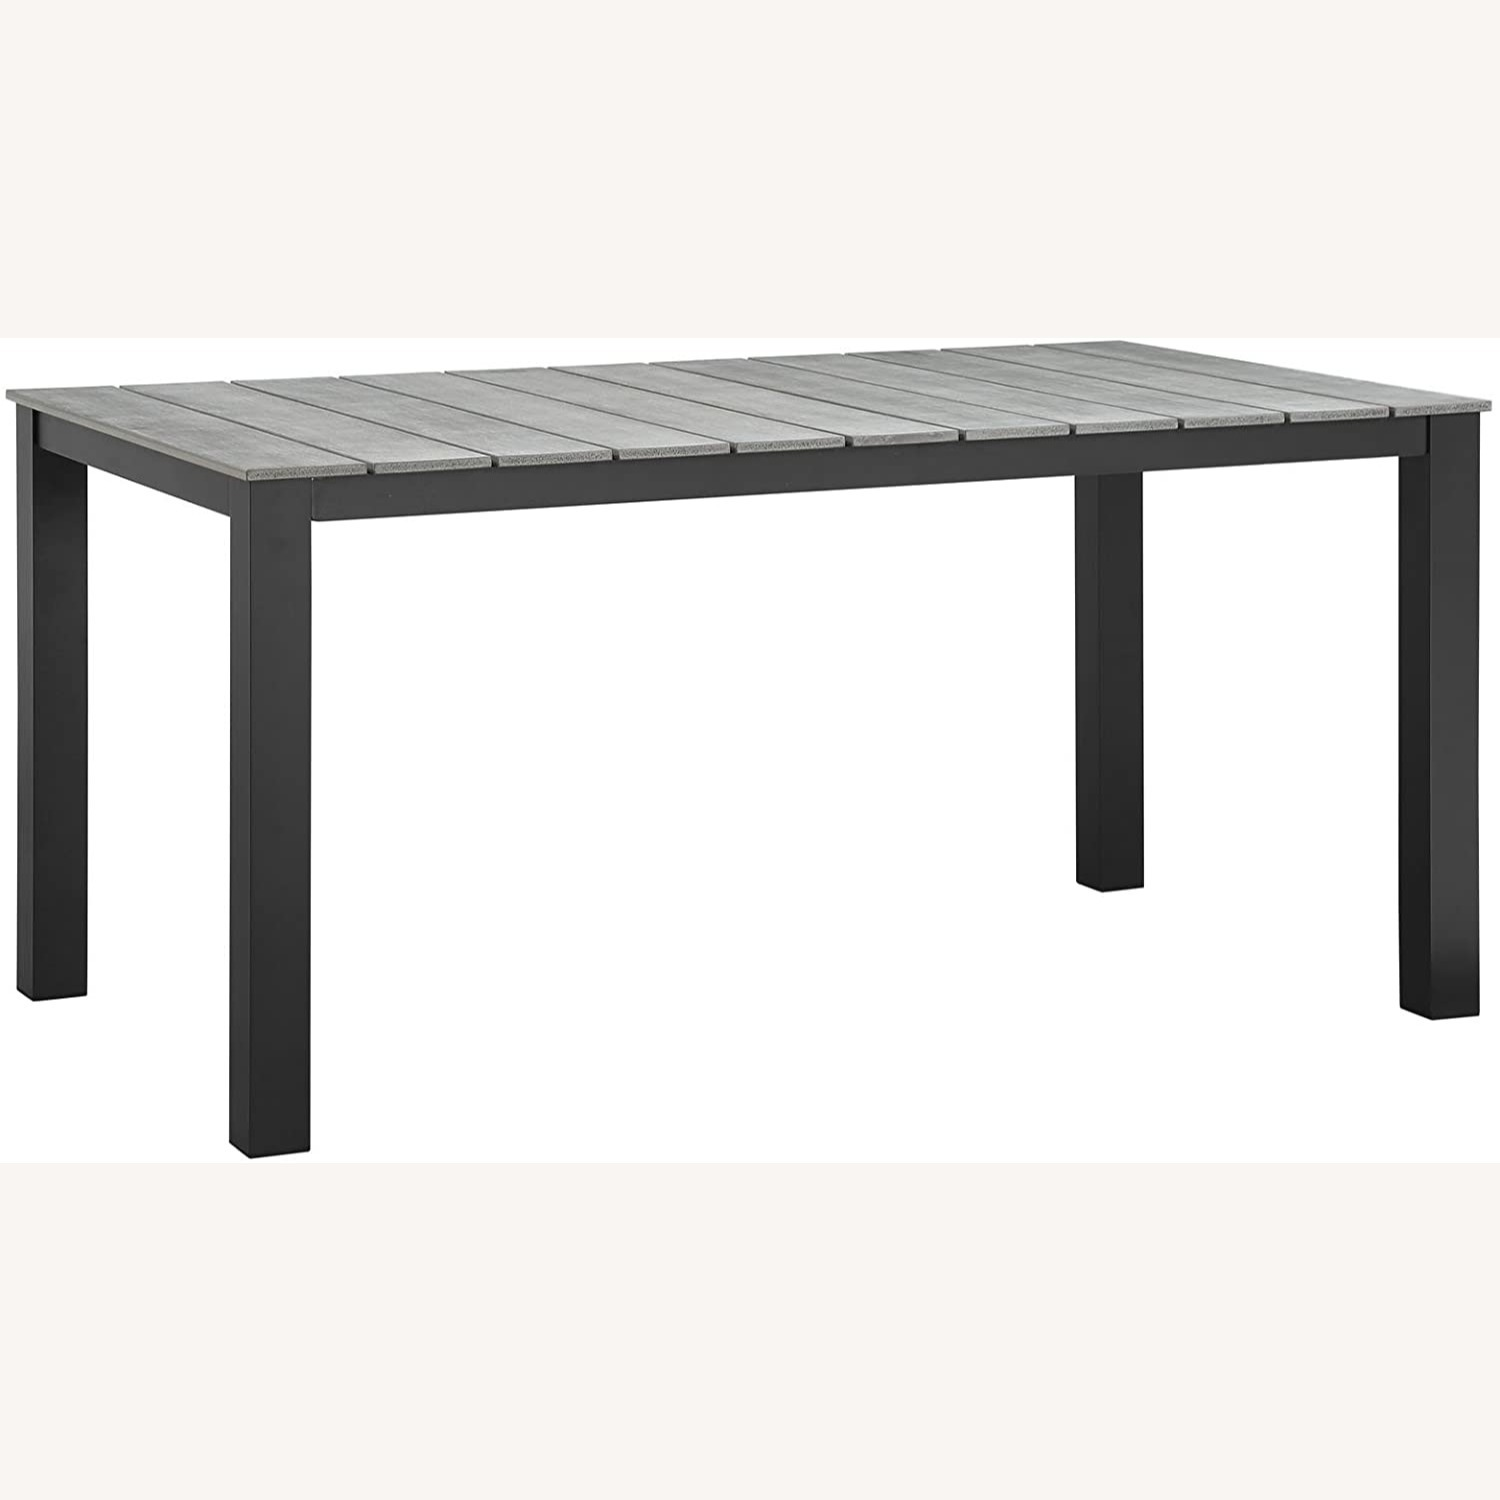 Modern 7-Piece Dining Set In Gray Frame Finish - image-4